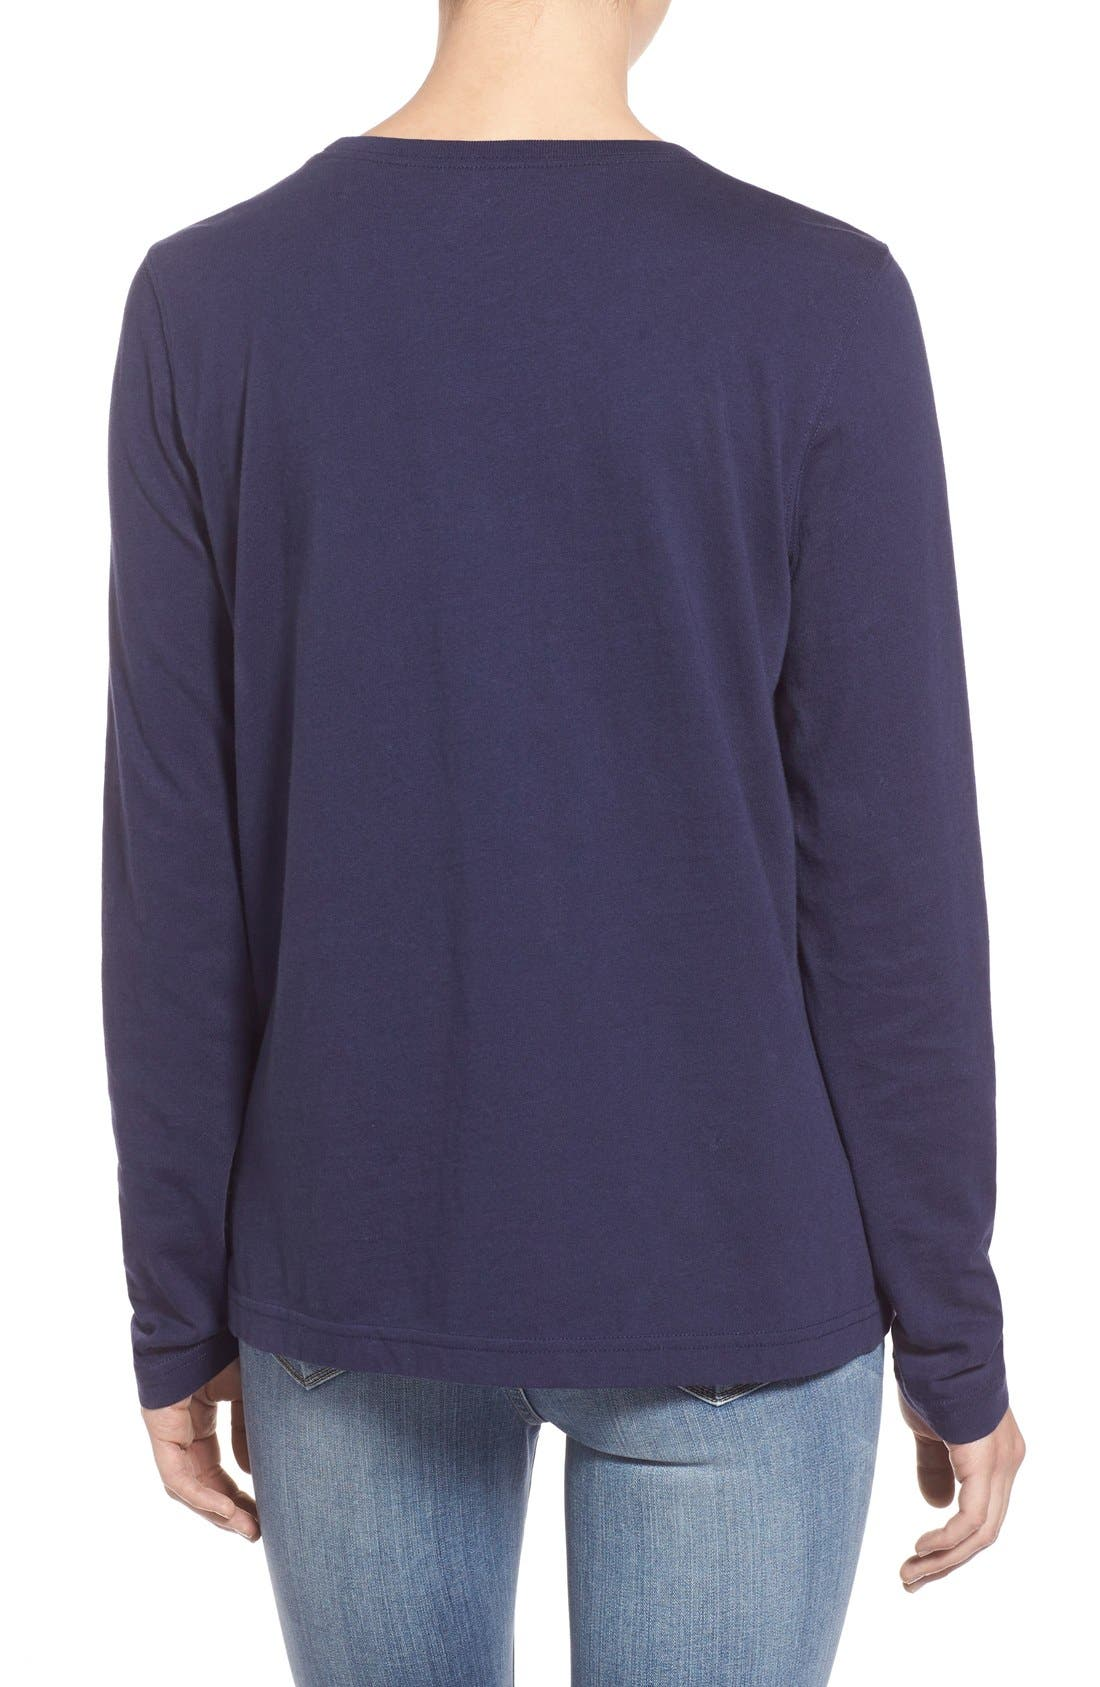 Alternate Image 3  - Vineyard Vines 'Collegiate' Long Sleeve Tee